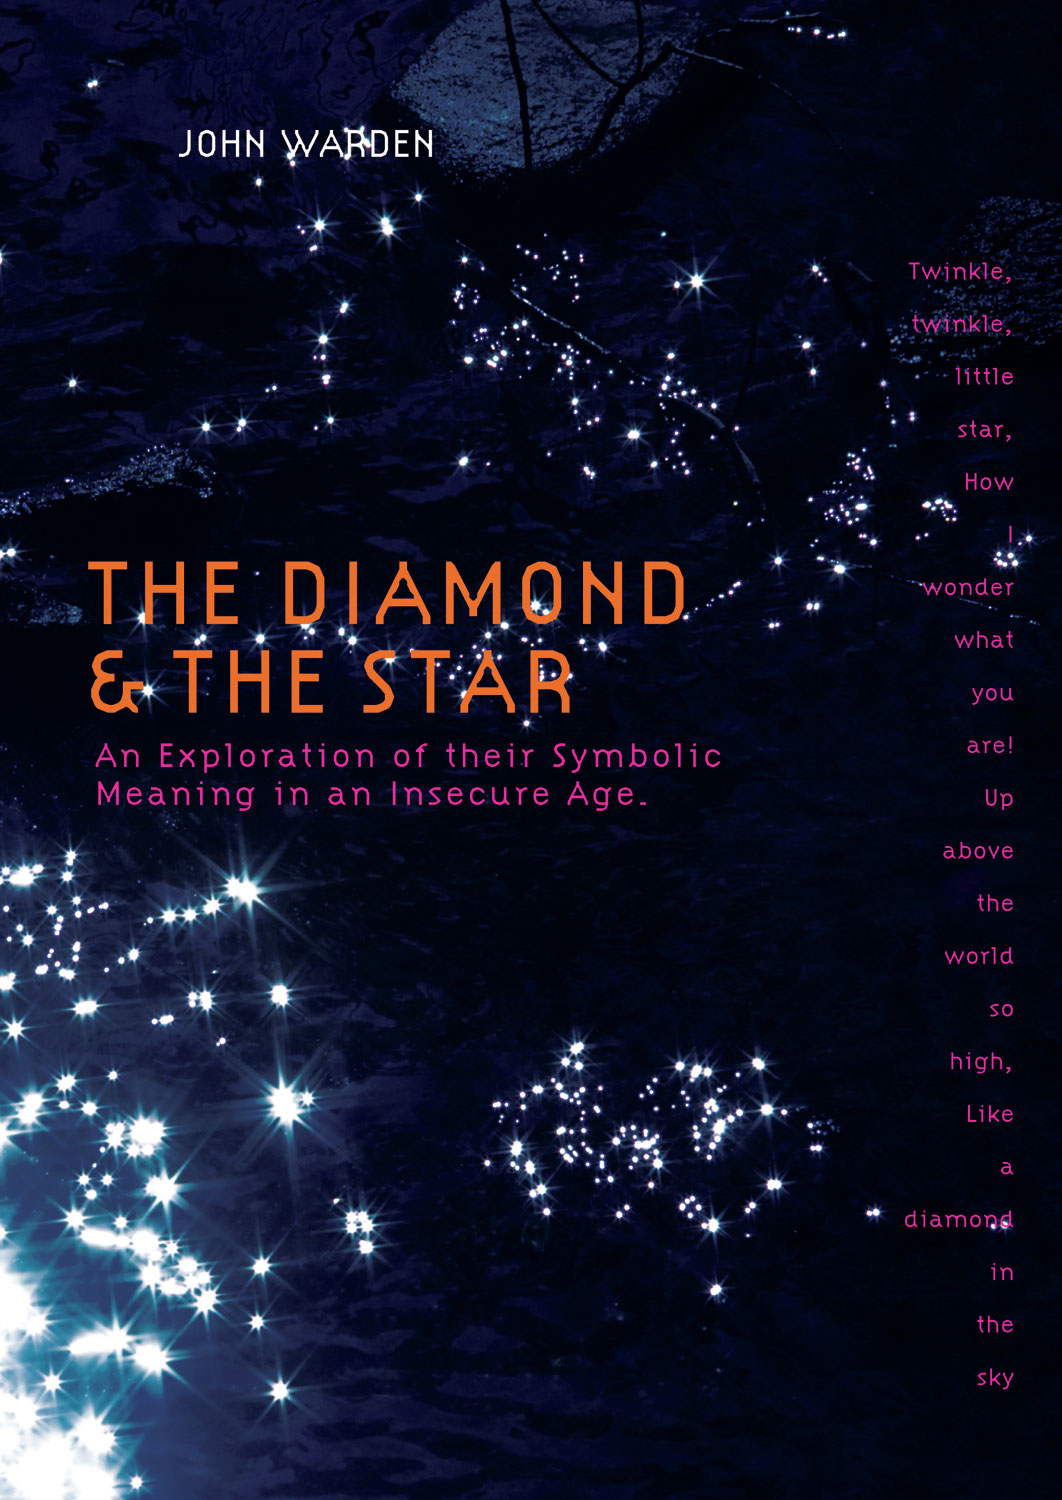 The Diamond & the Star